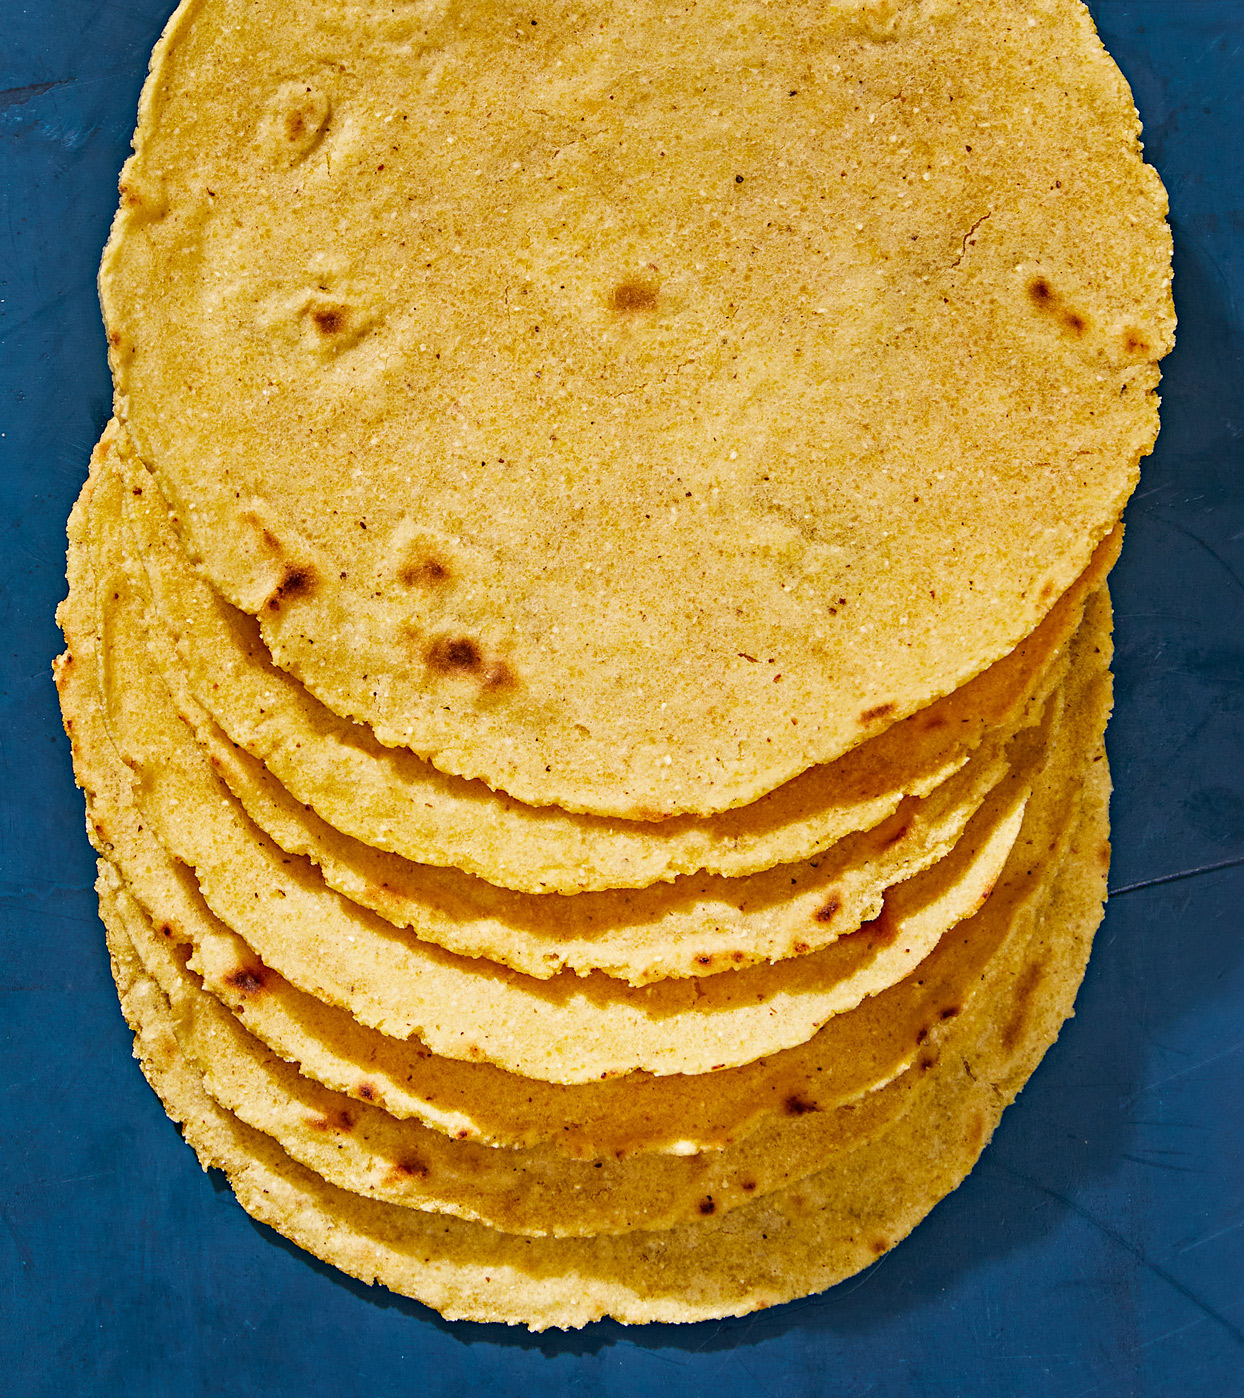 homemade corn tortillas stacked against blue background